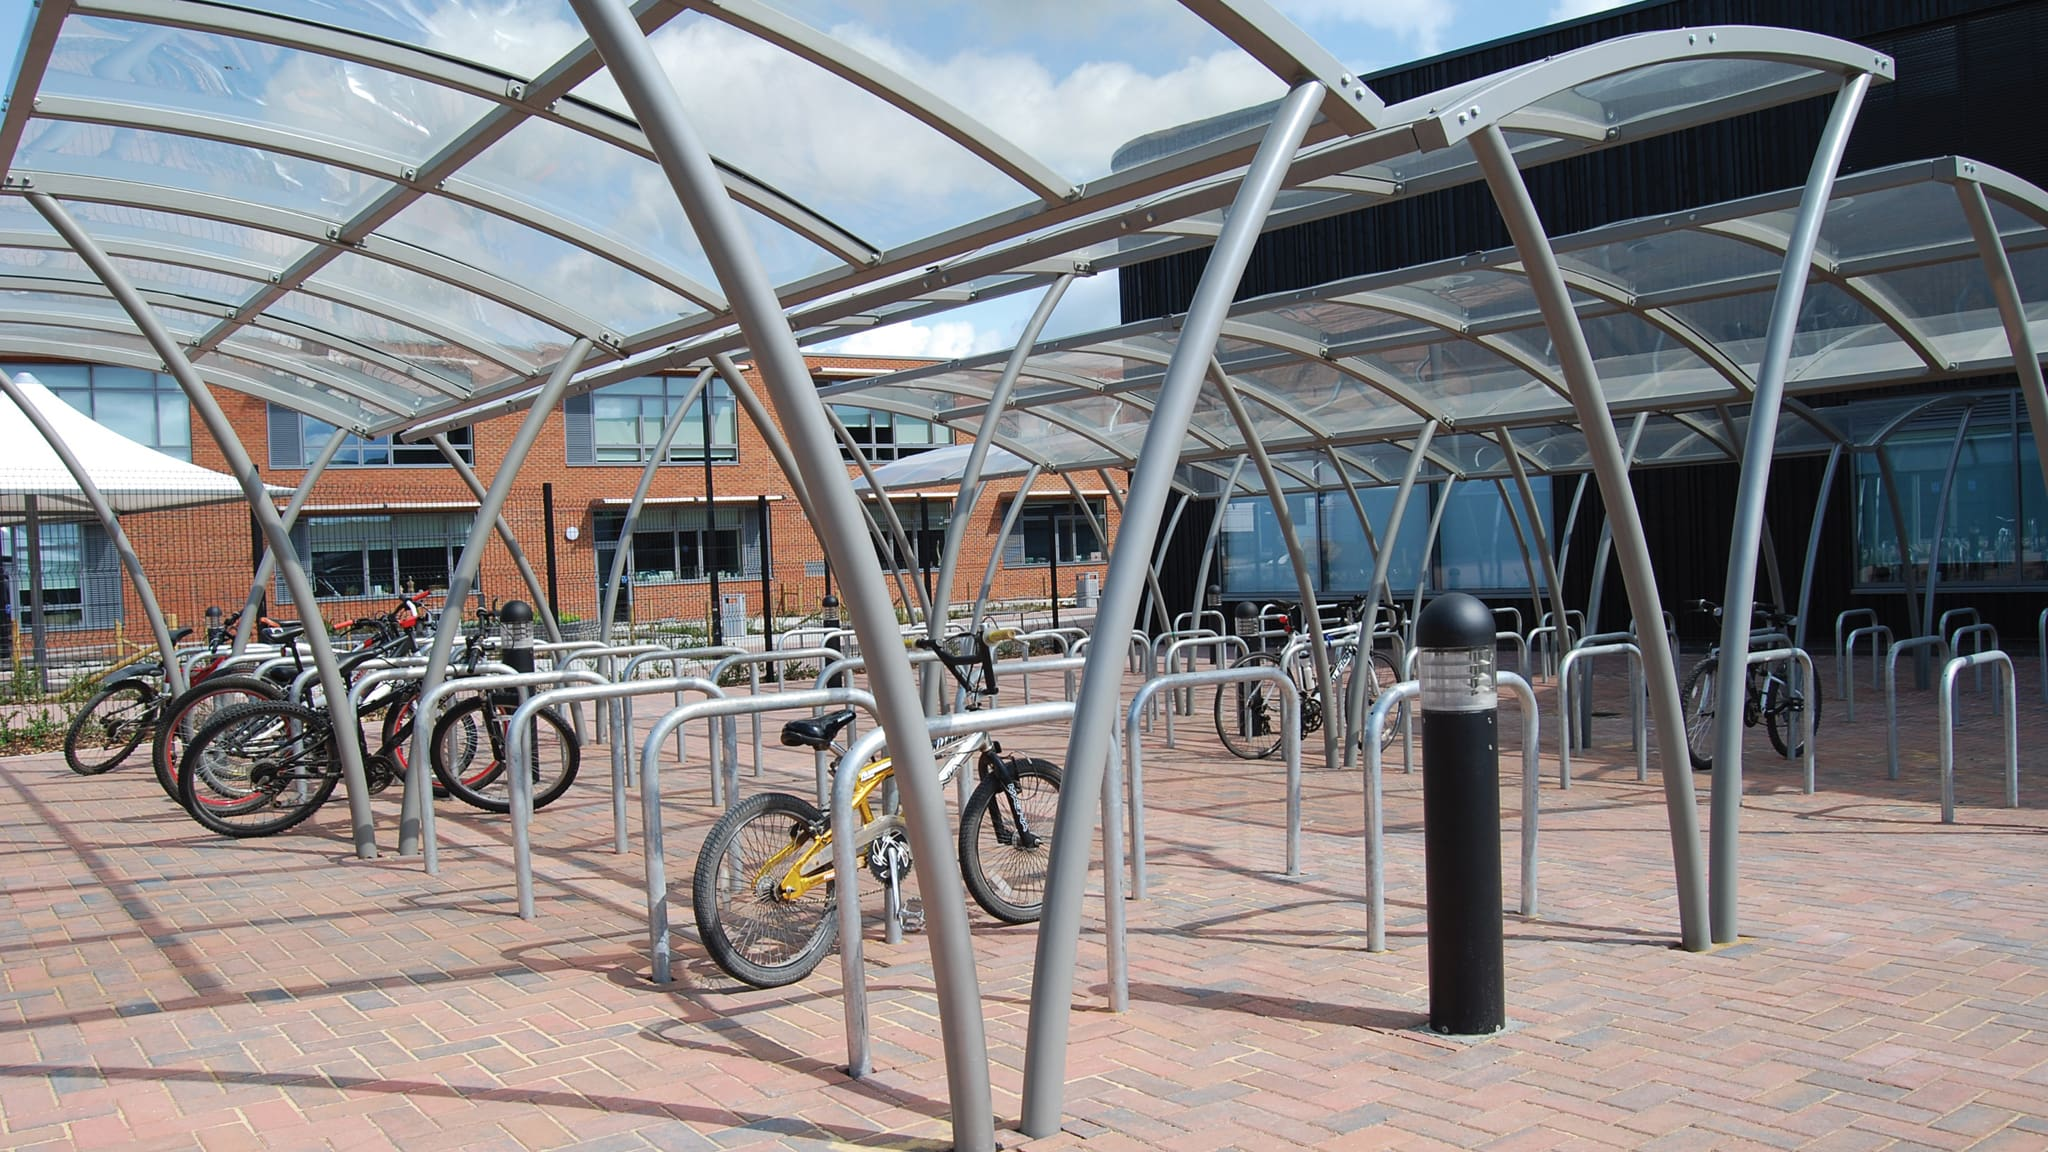 Bicycle parking structure